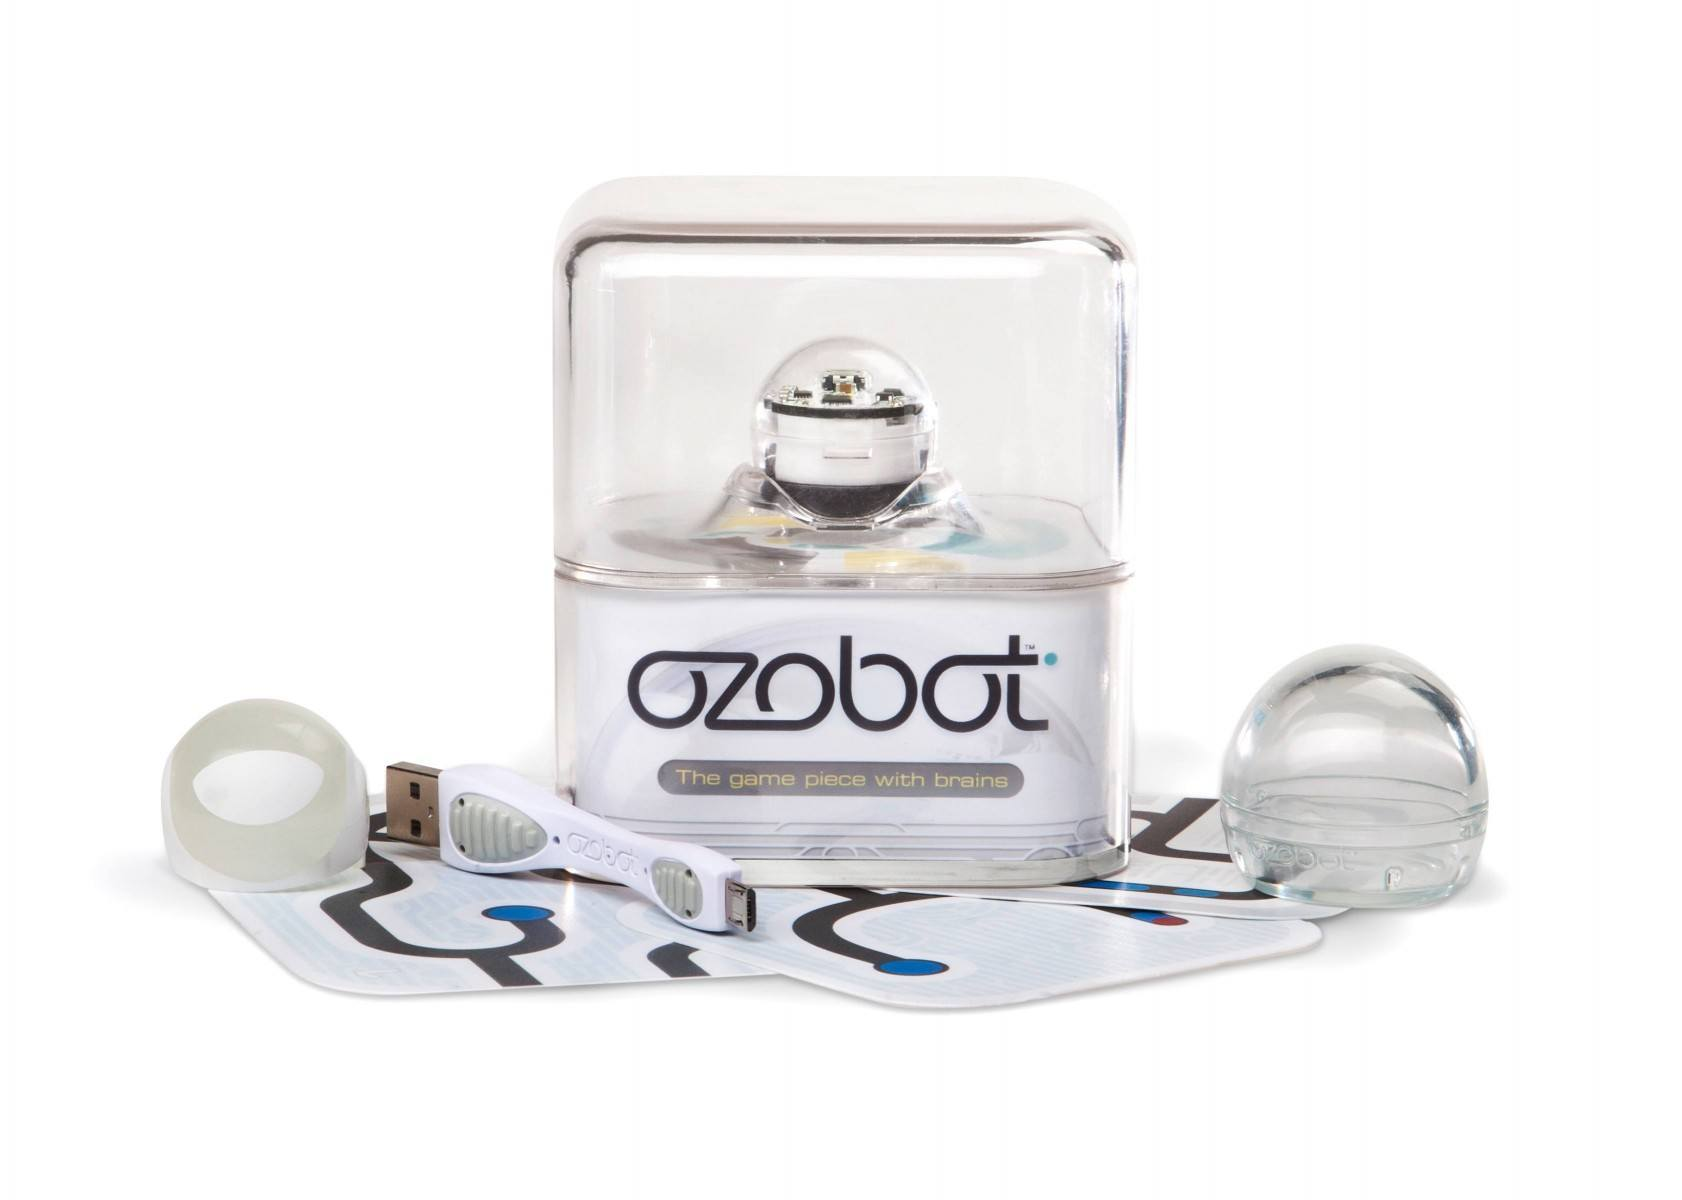 Ozobot_SingleWhite_Accessories_Final_HR